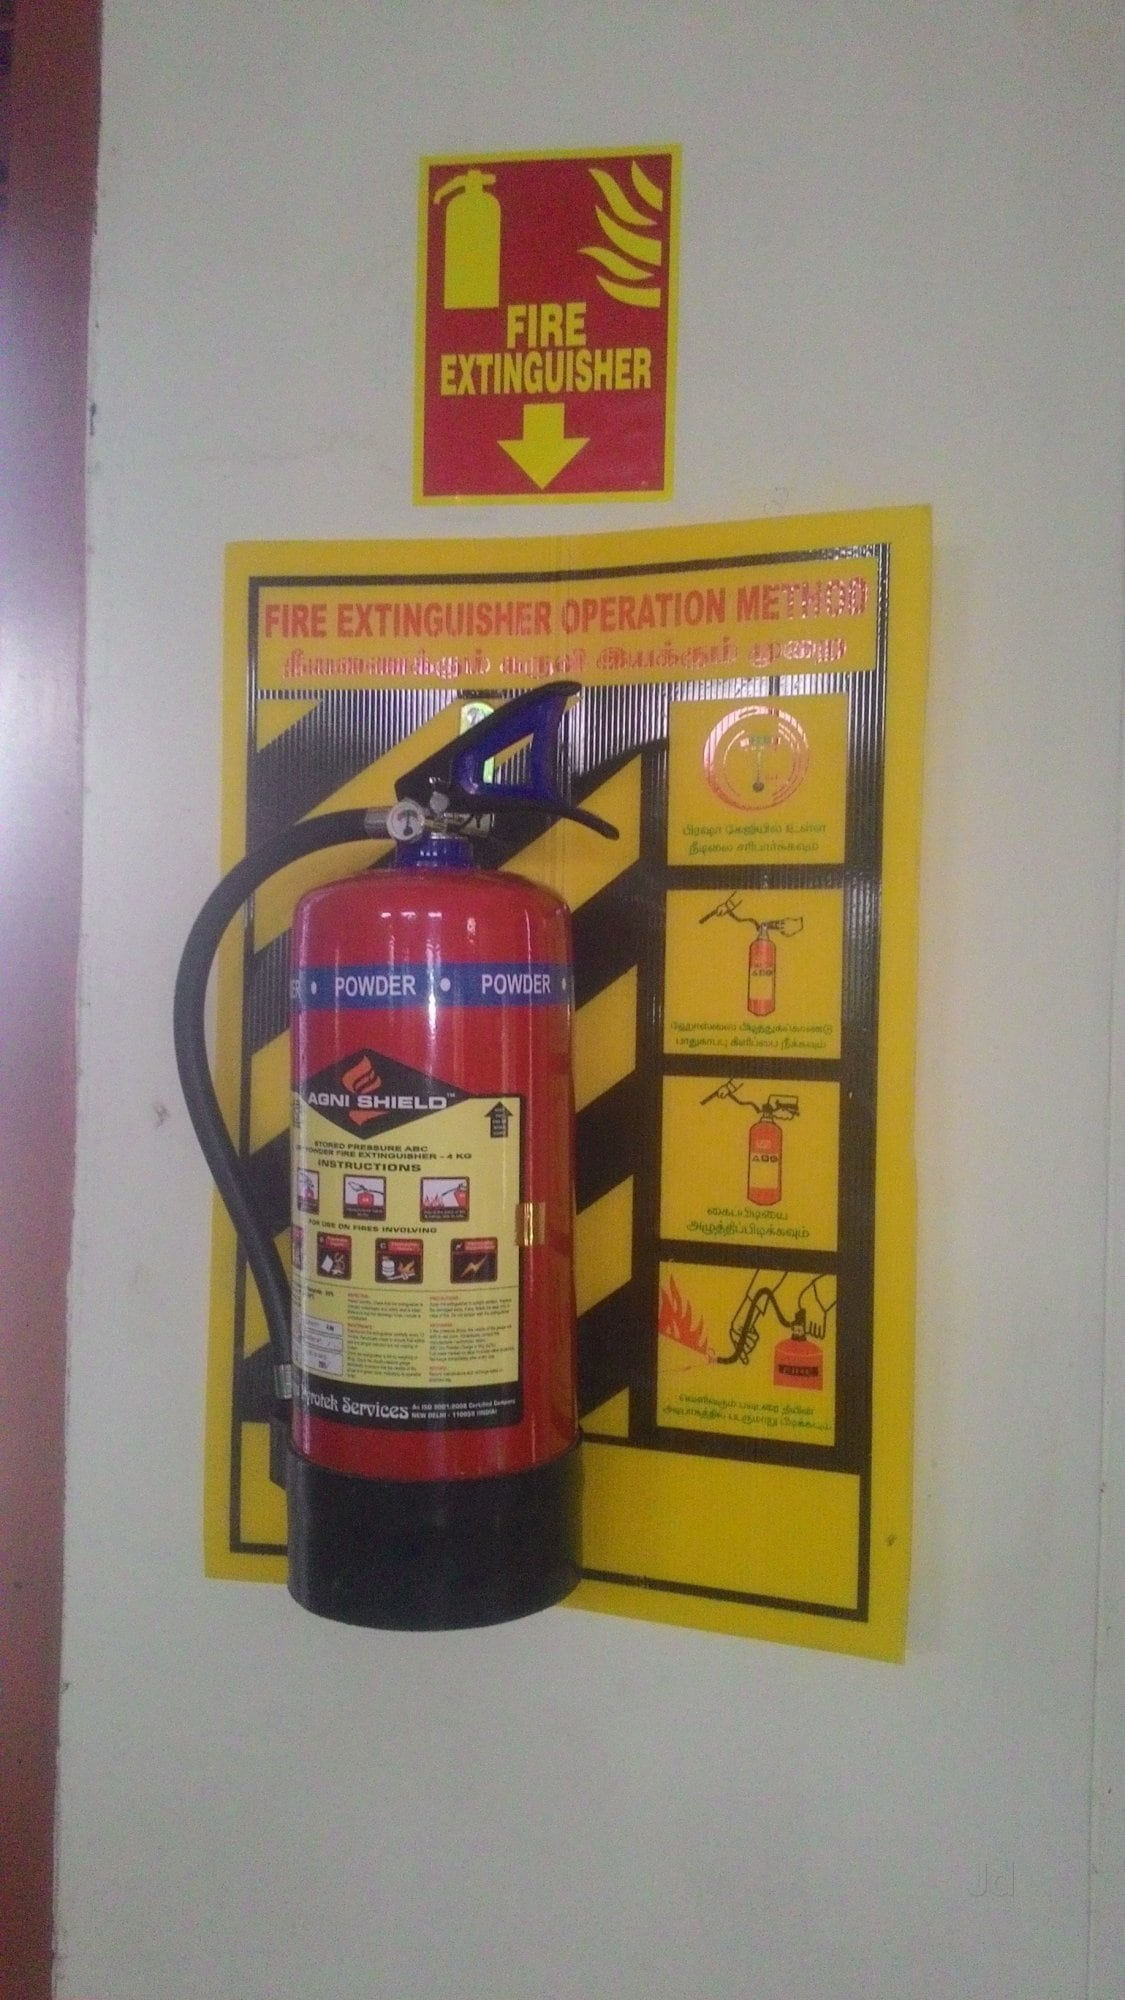 Top 20 Fire Extinguisher Refilling Services in Madurai